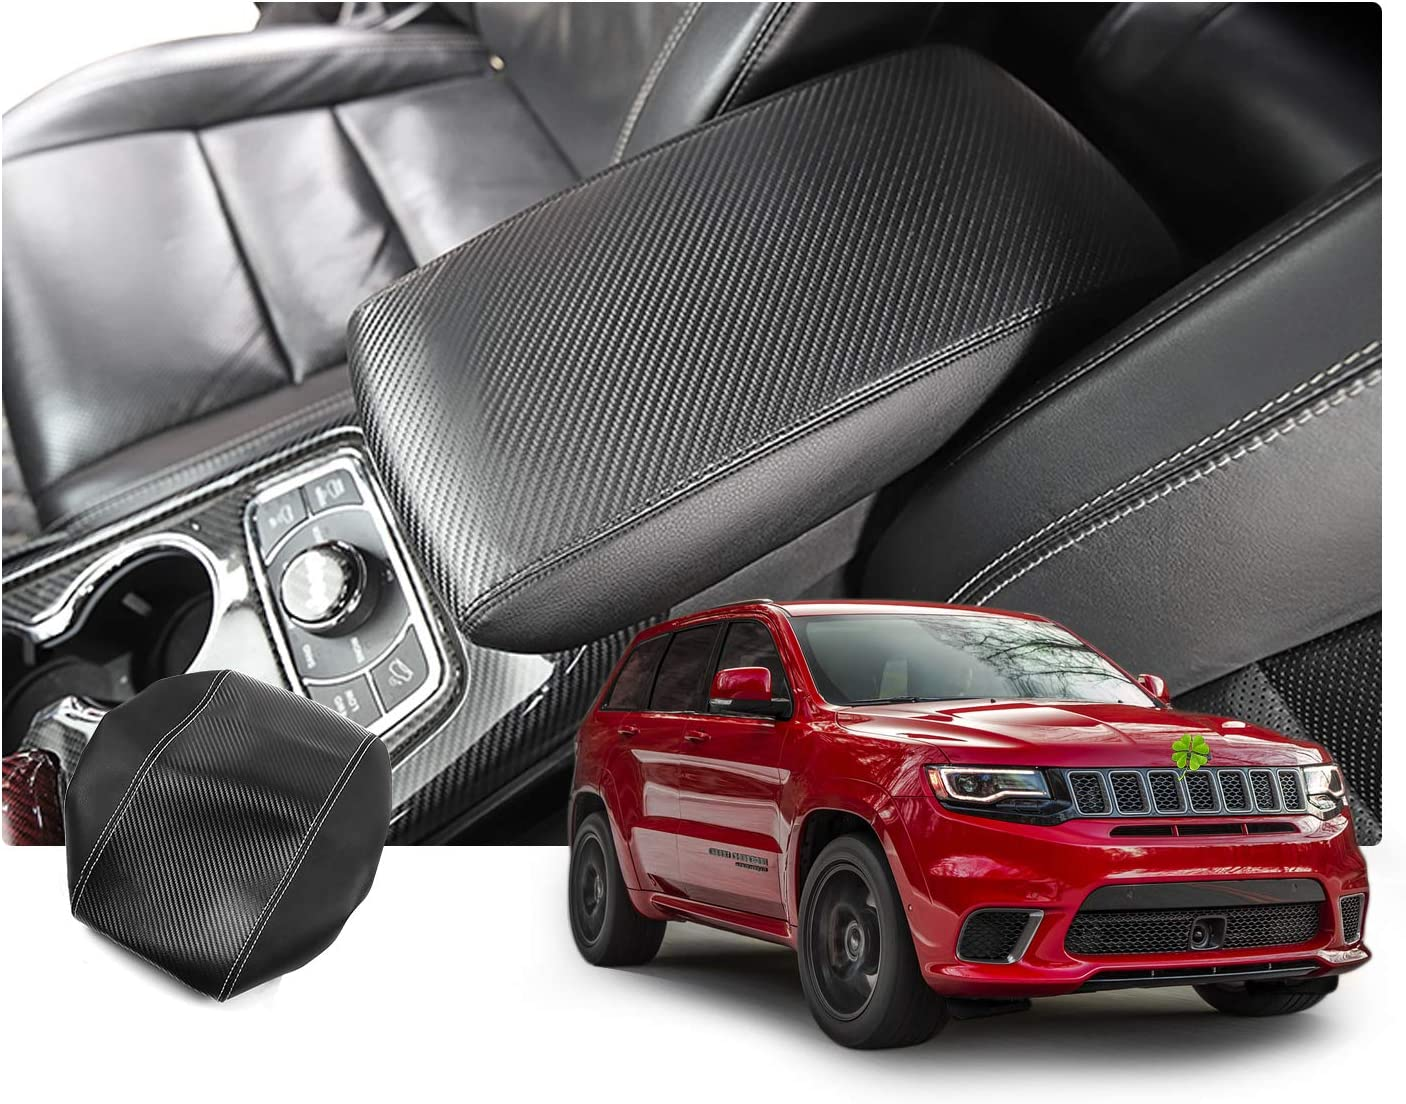 JeCar Gear Shifter Storage Box Manual Transmission Side Storage Tray Interior Accessories for 2011-2019 Jeep Grand Cherokee WK2 Black